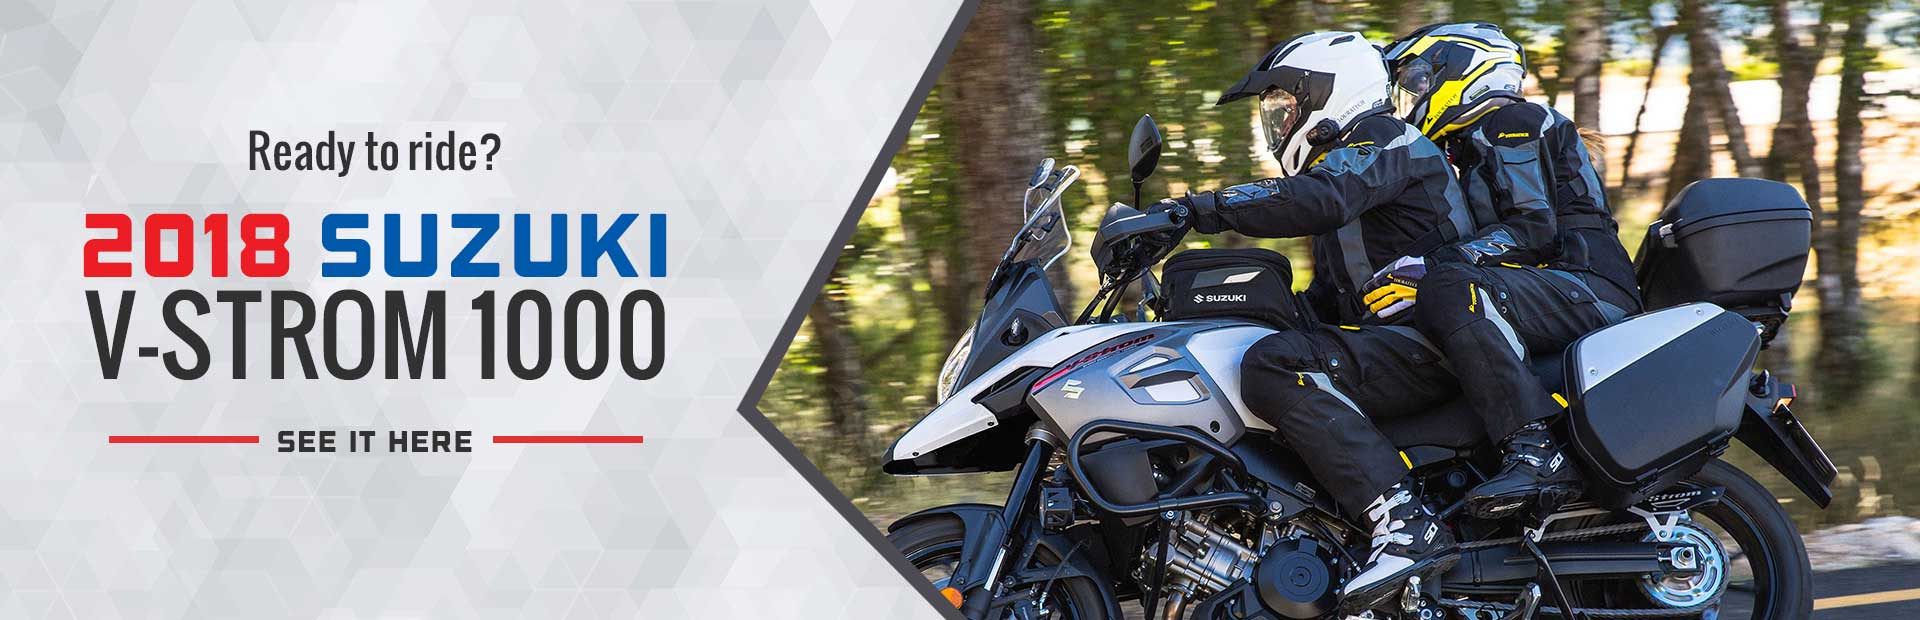 2018 Suzuki V-Strom 1000: Click here to view the model.